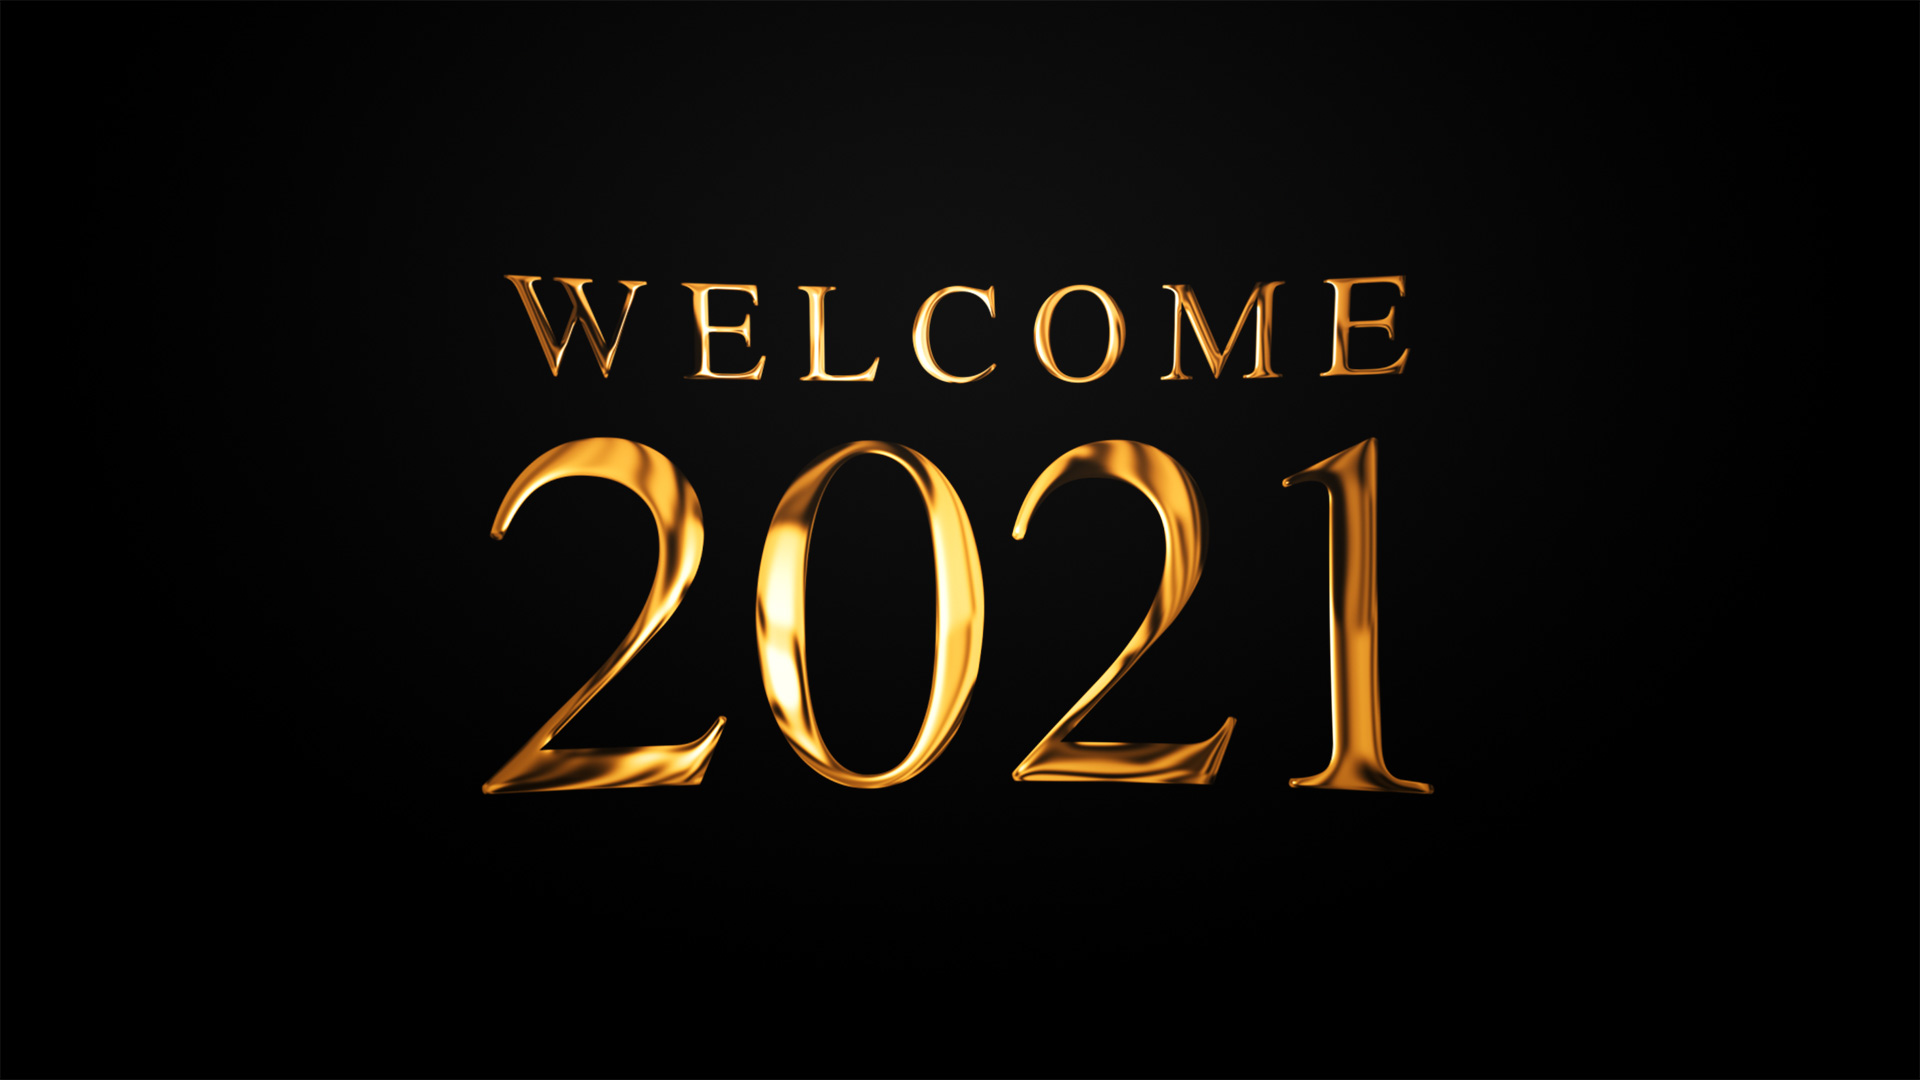 Welcome 2021 Image